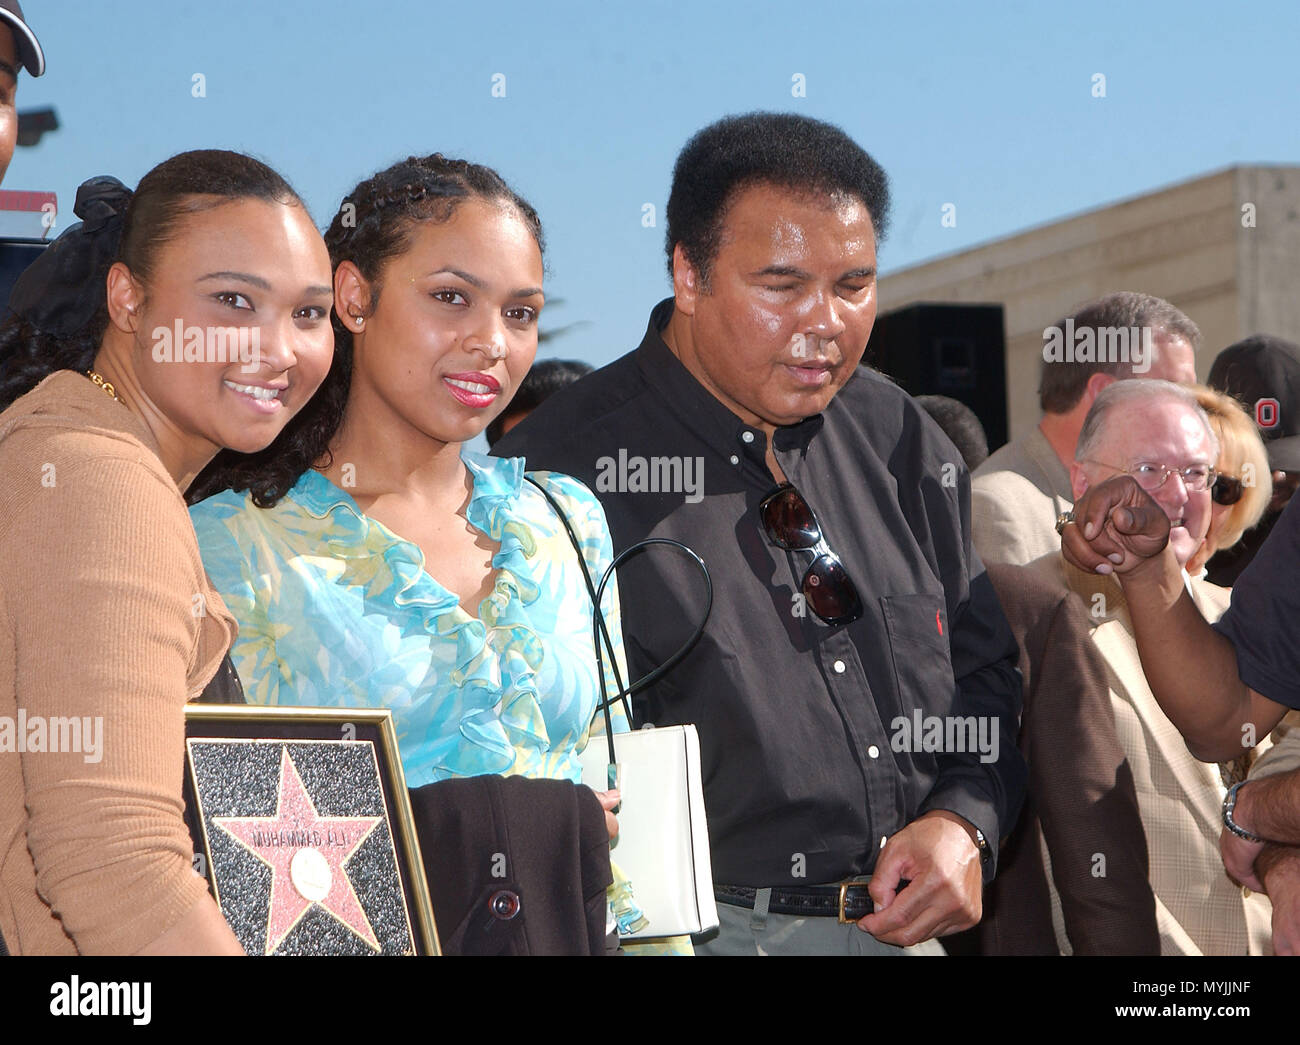 muhammad ali with daughters maymay and hanna at the ceremony for his